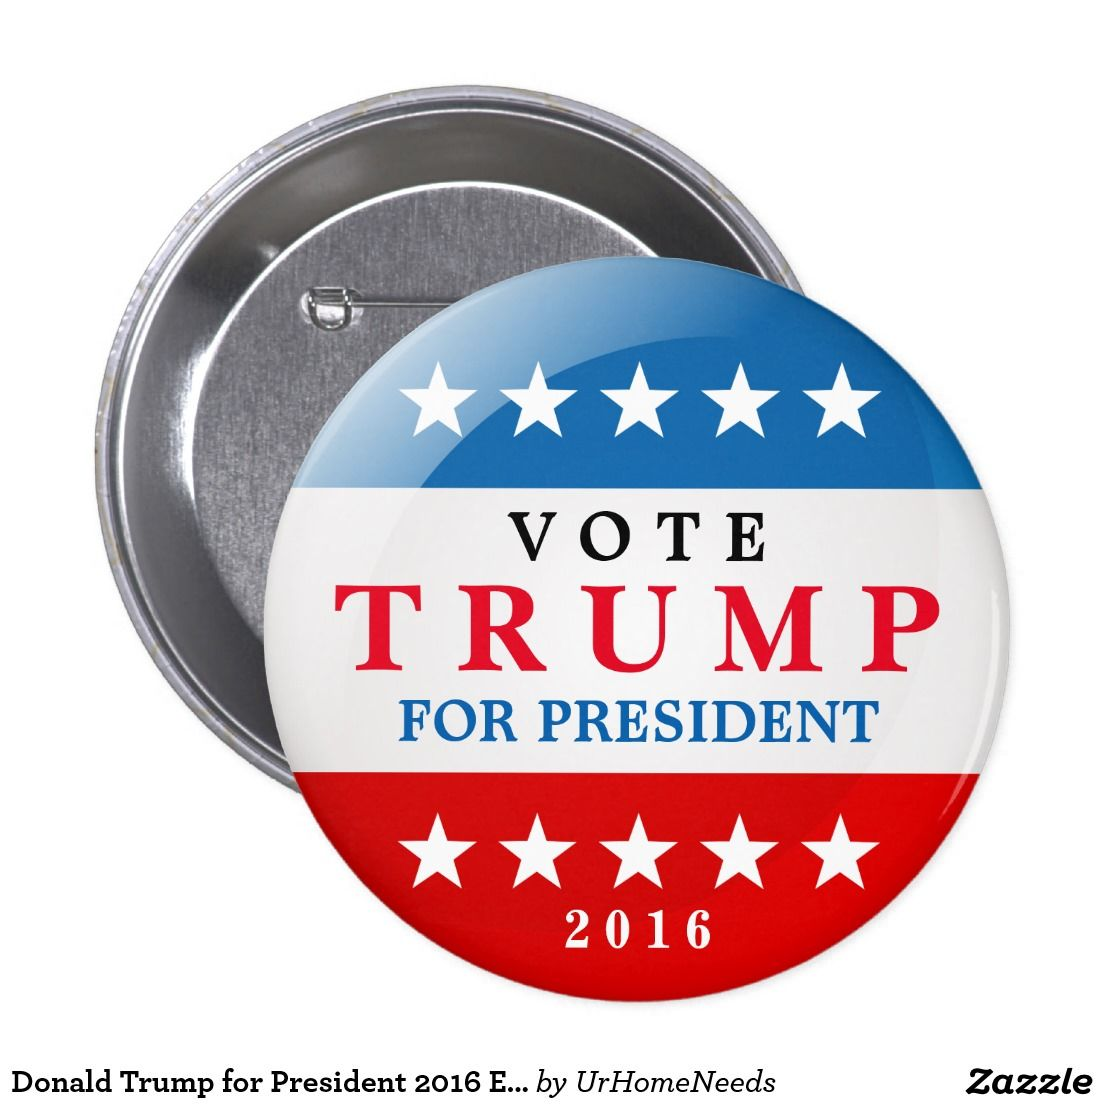 Donald Trump for President 2016 Election Campaign